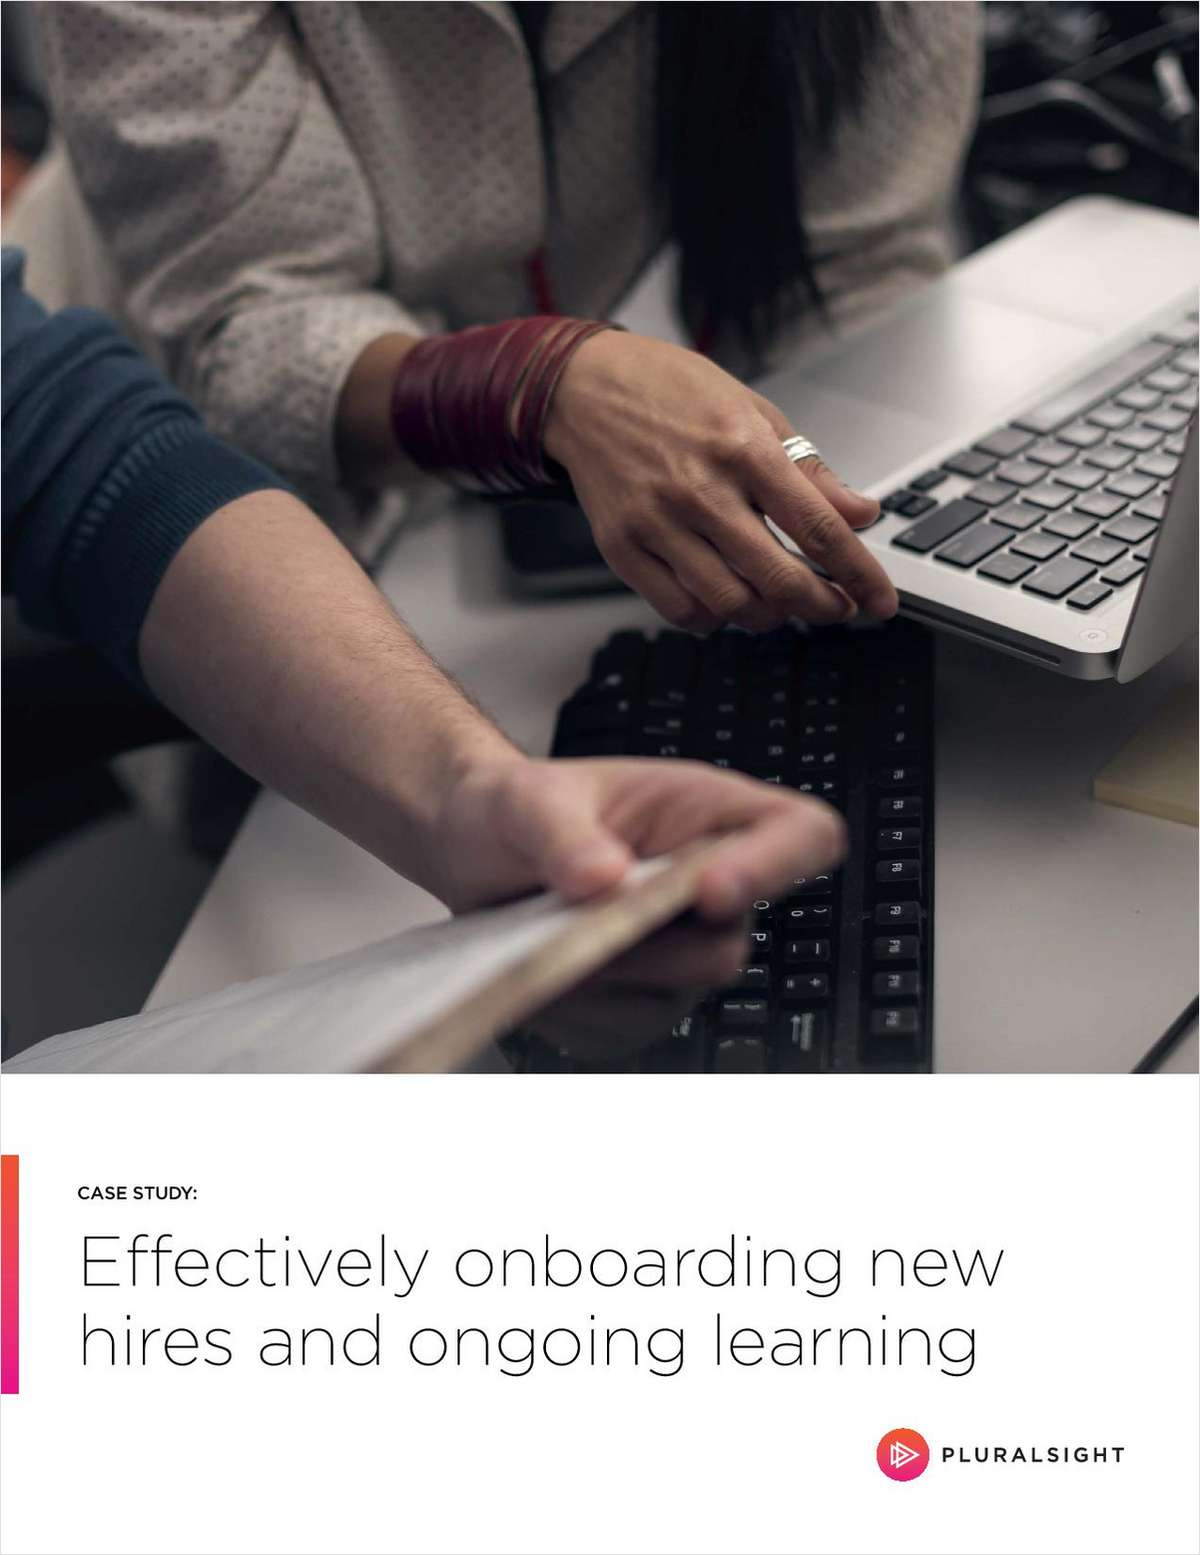 Case Study: Effectively Onboarding New Hires and Ongoing Learning